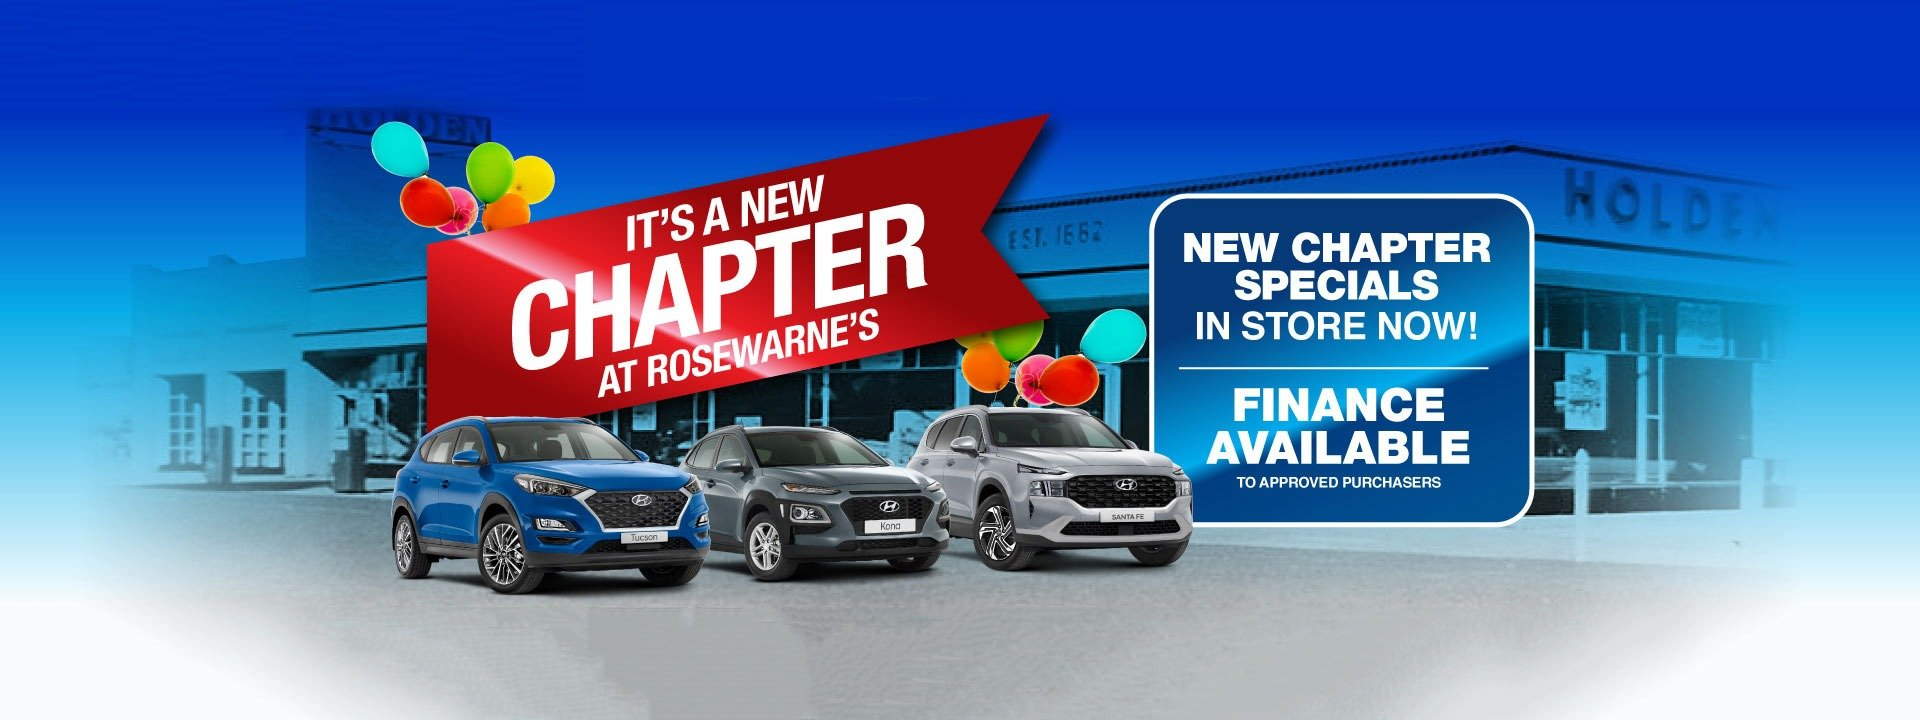 Rosewarne's Hyundai   All New Chapter Special!